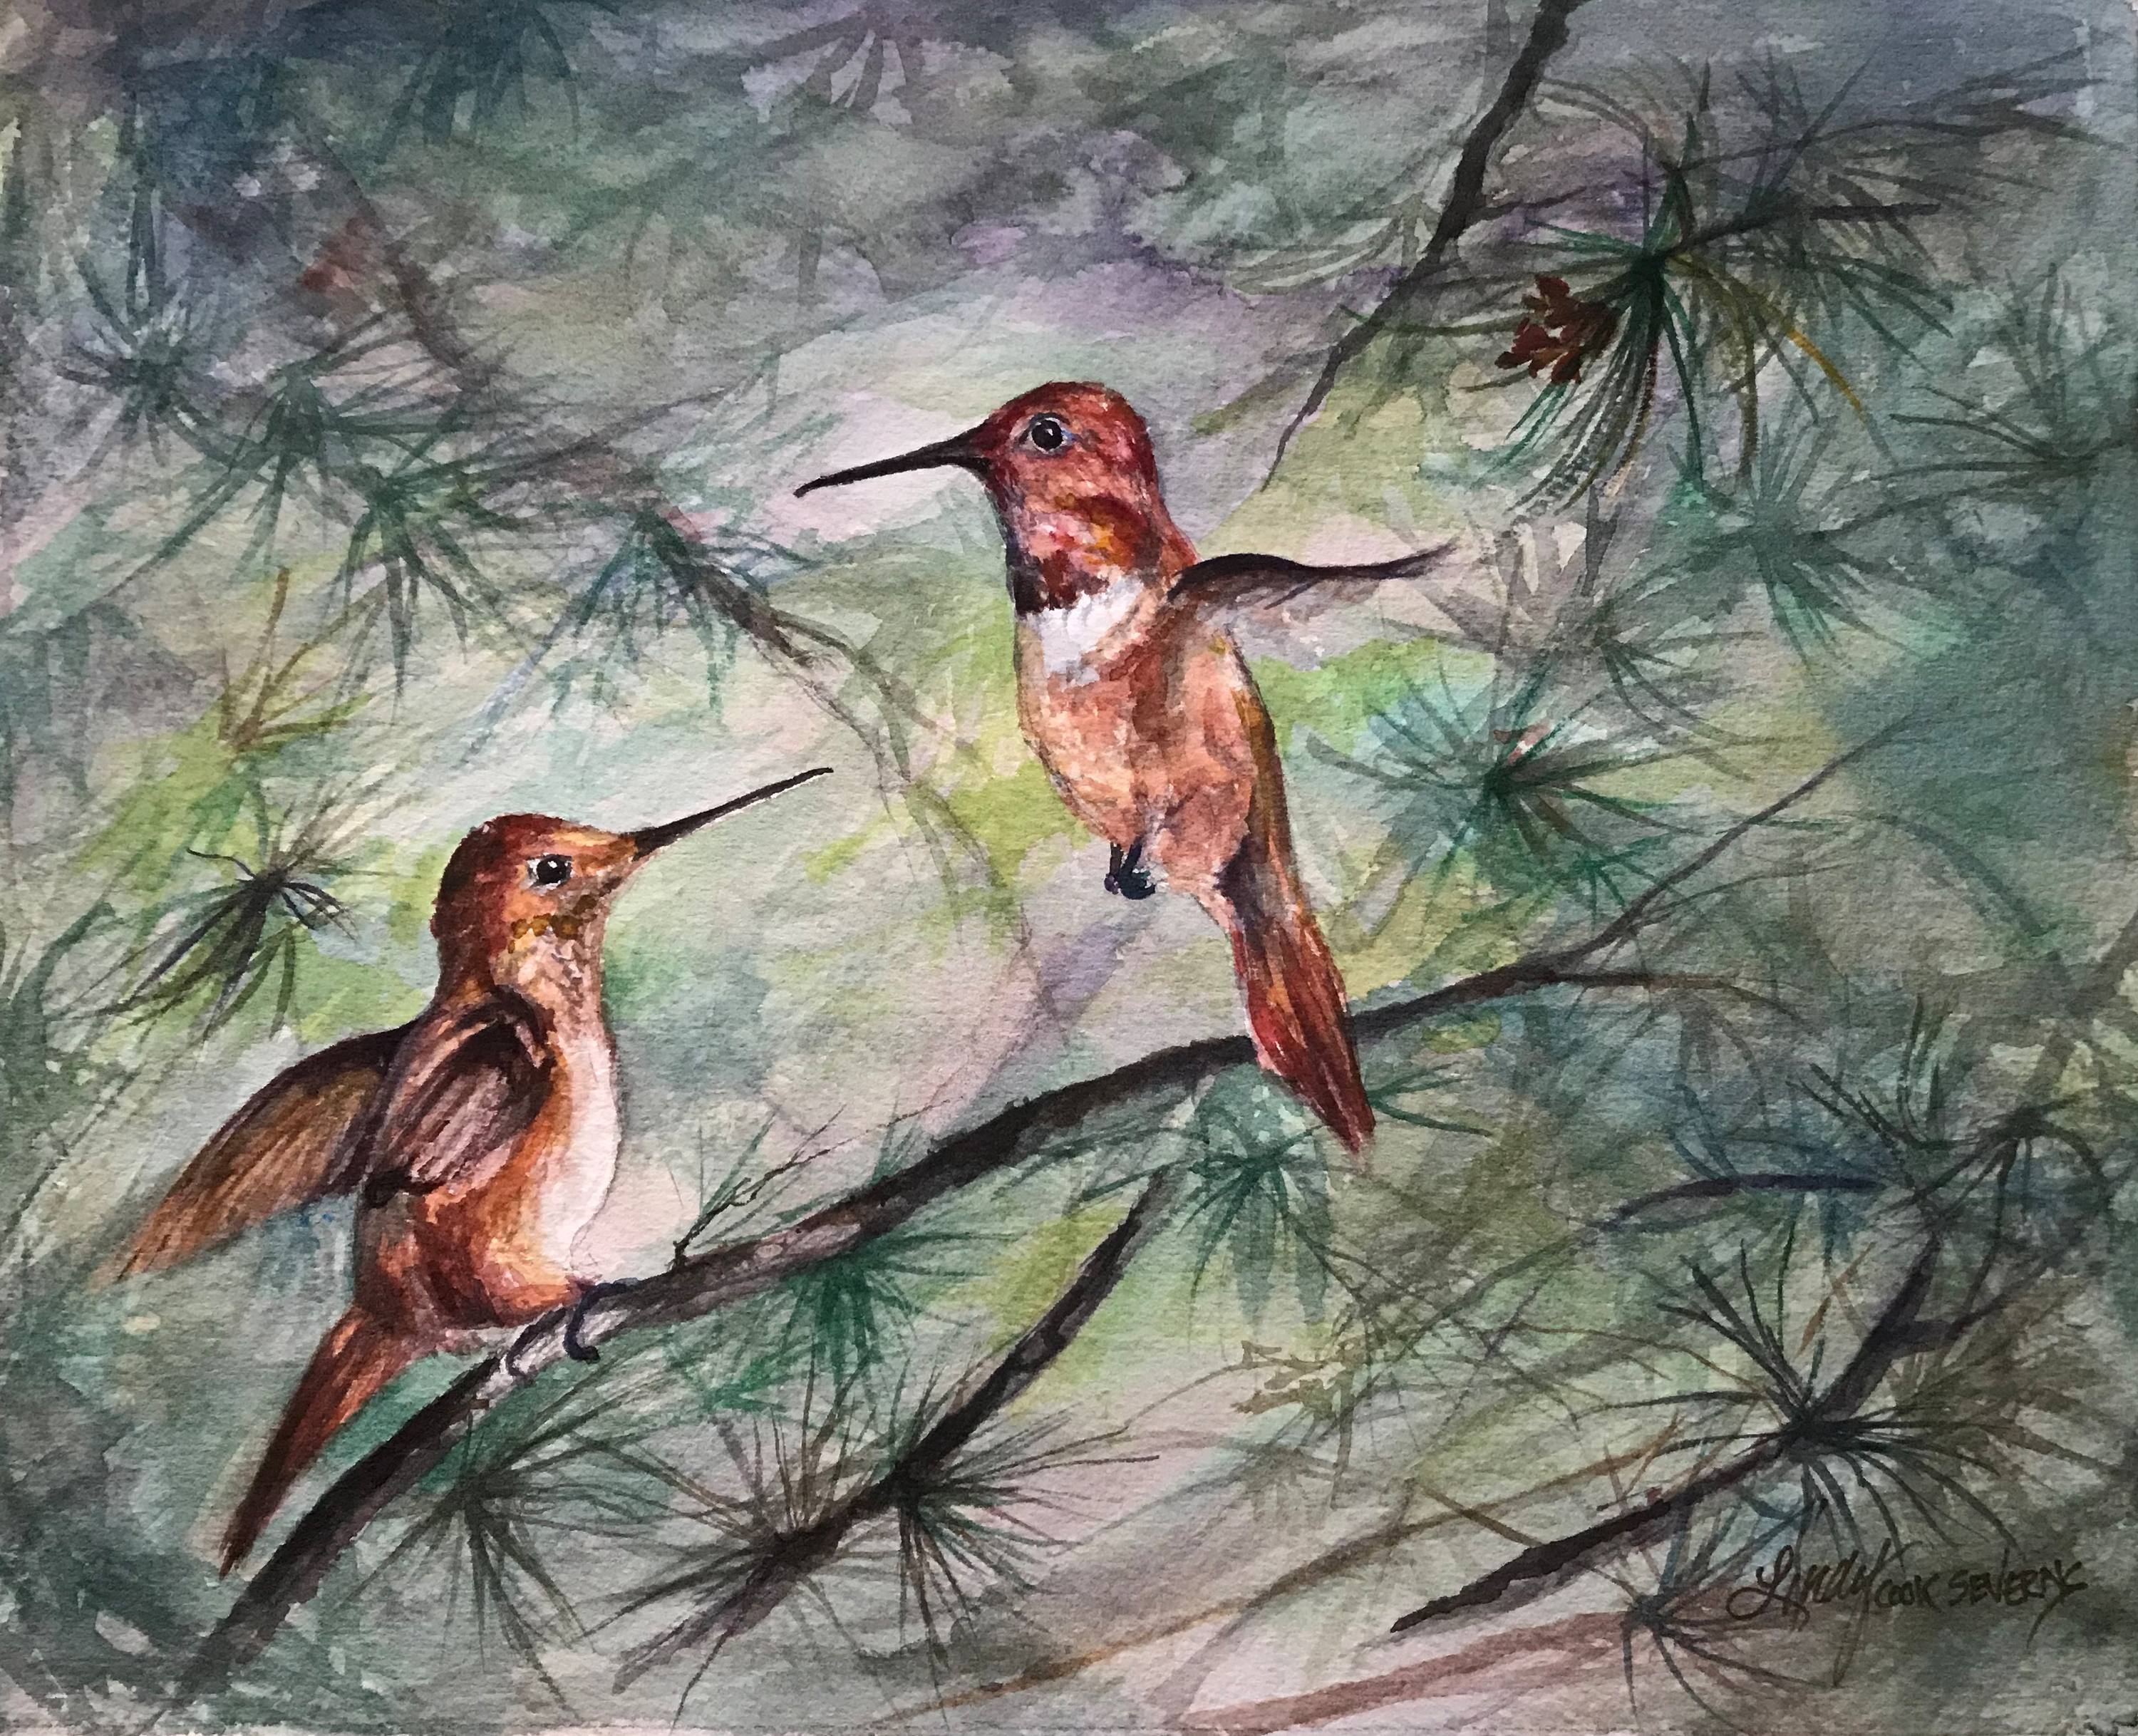 Comparing wing spans 8x10 watercolor lindy cook severns tzvtaq